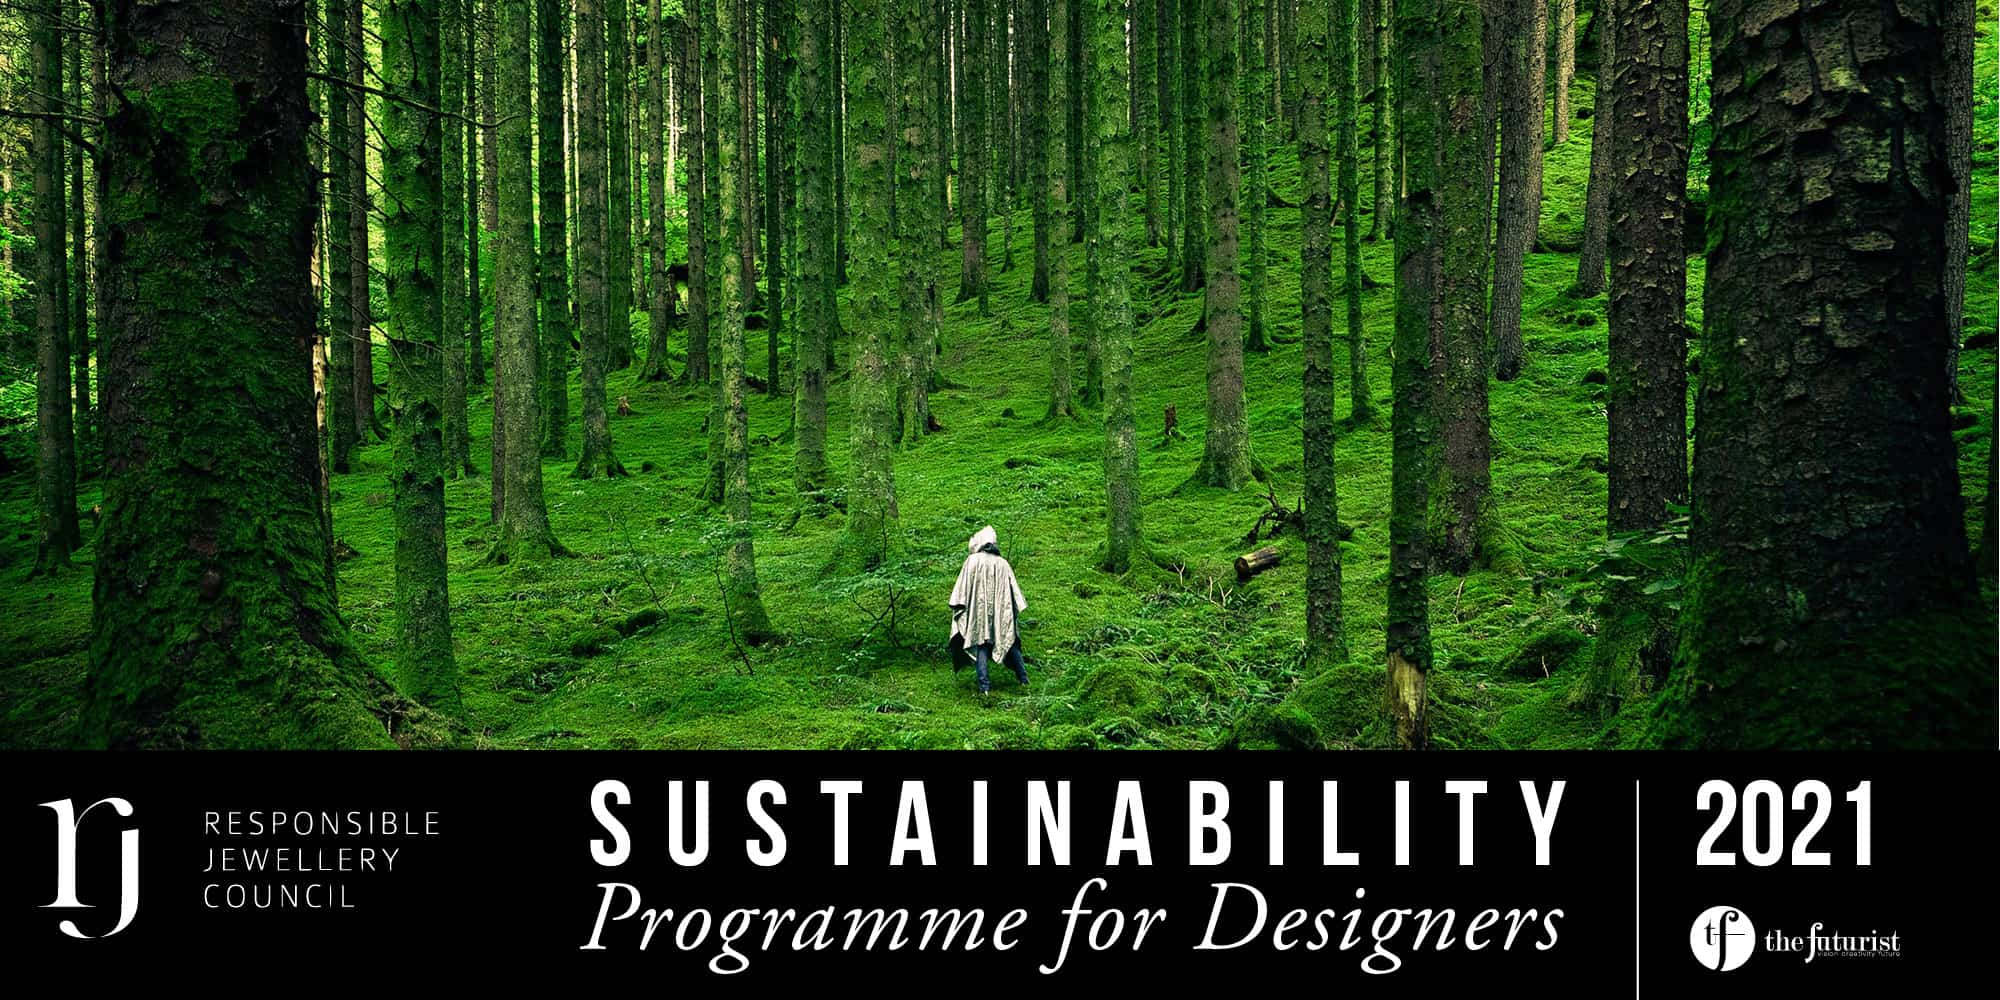 Paola De Luca's Futurist joins forces with RJC to bring virtual courses on sustainability to jewellery designers